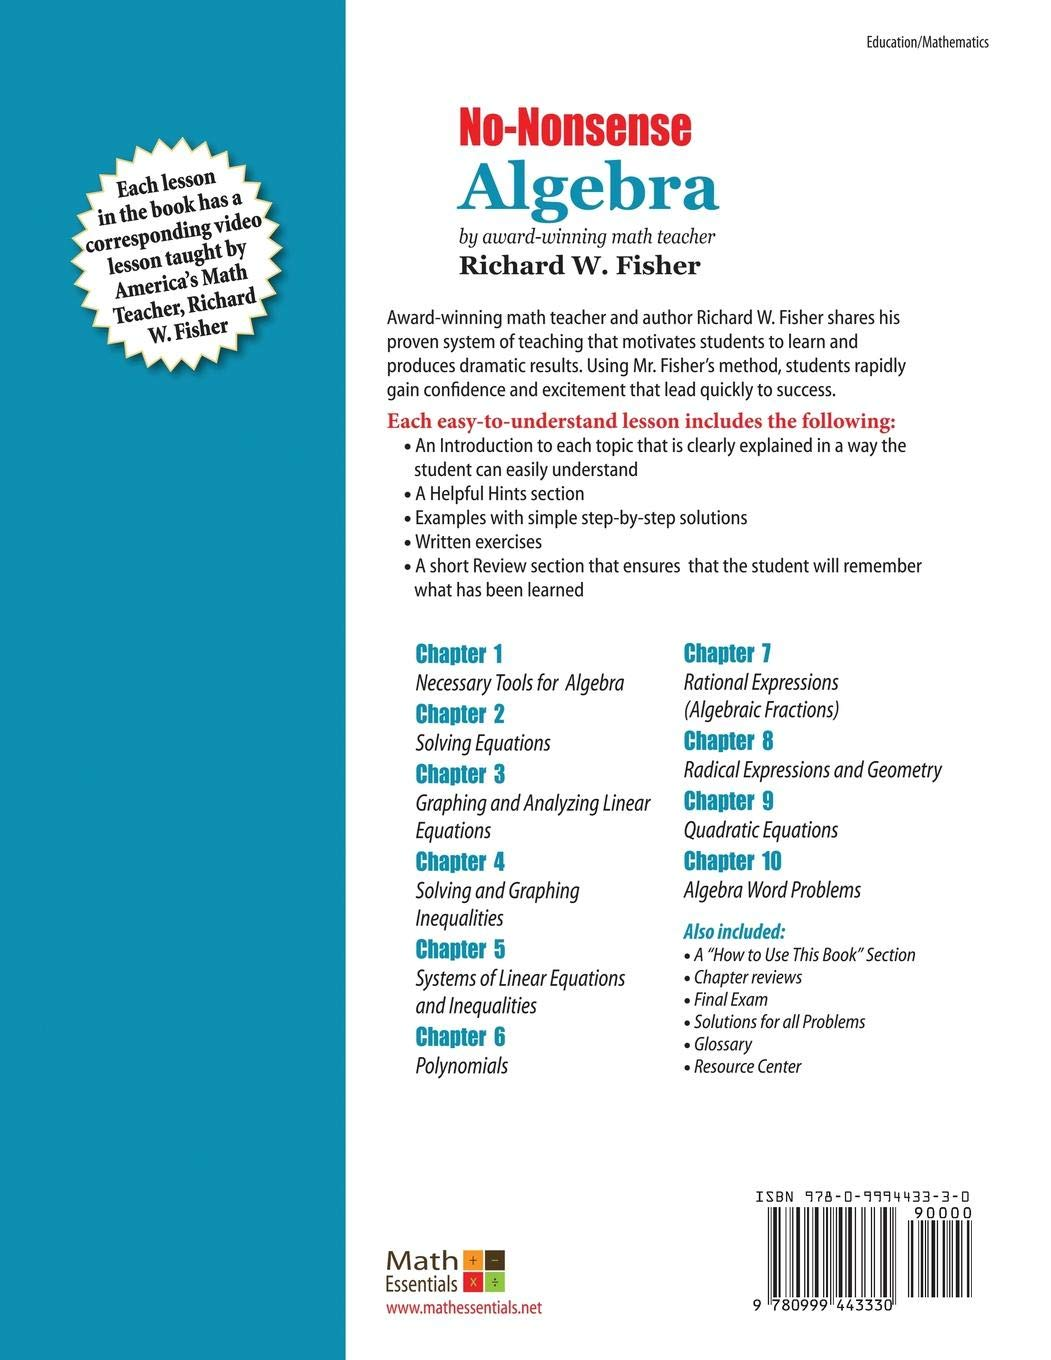 No-Nonsense Algebra, 2nd Edition: Part of the Mastering Essential ...